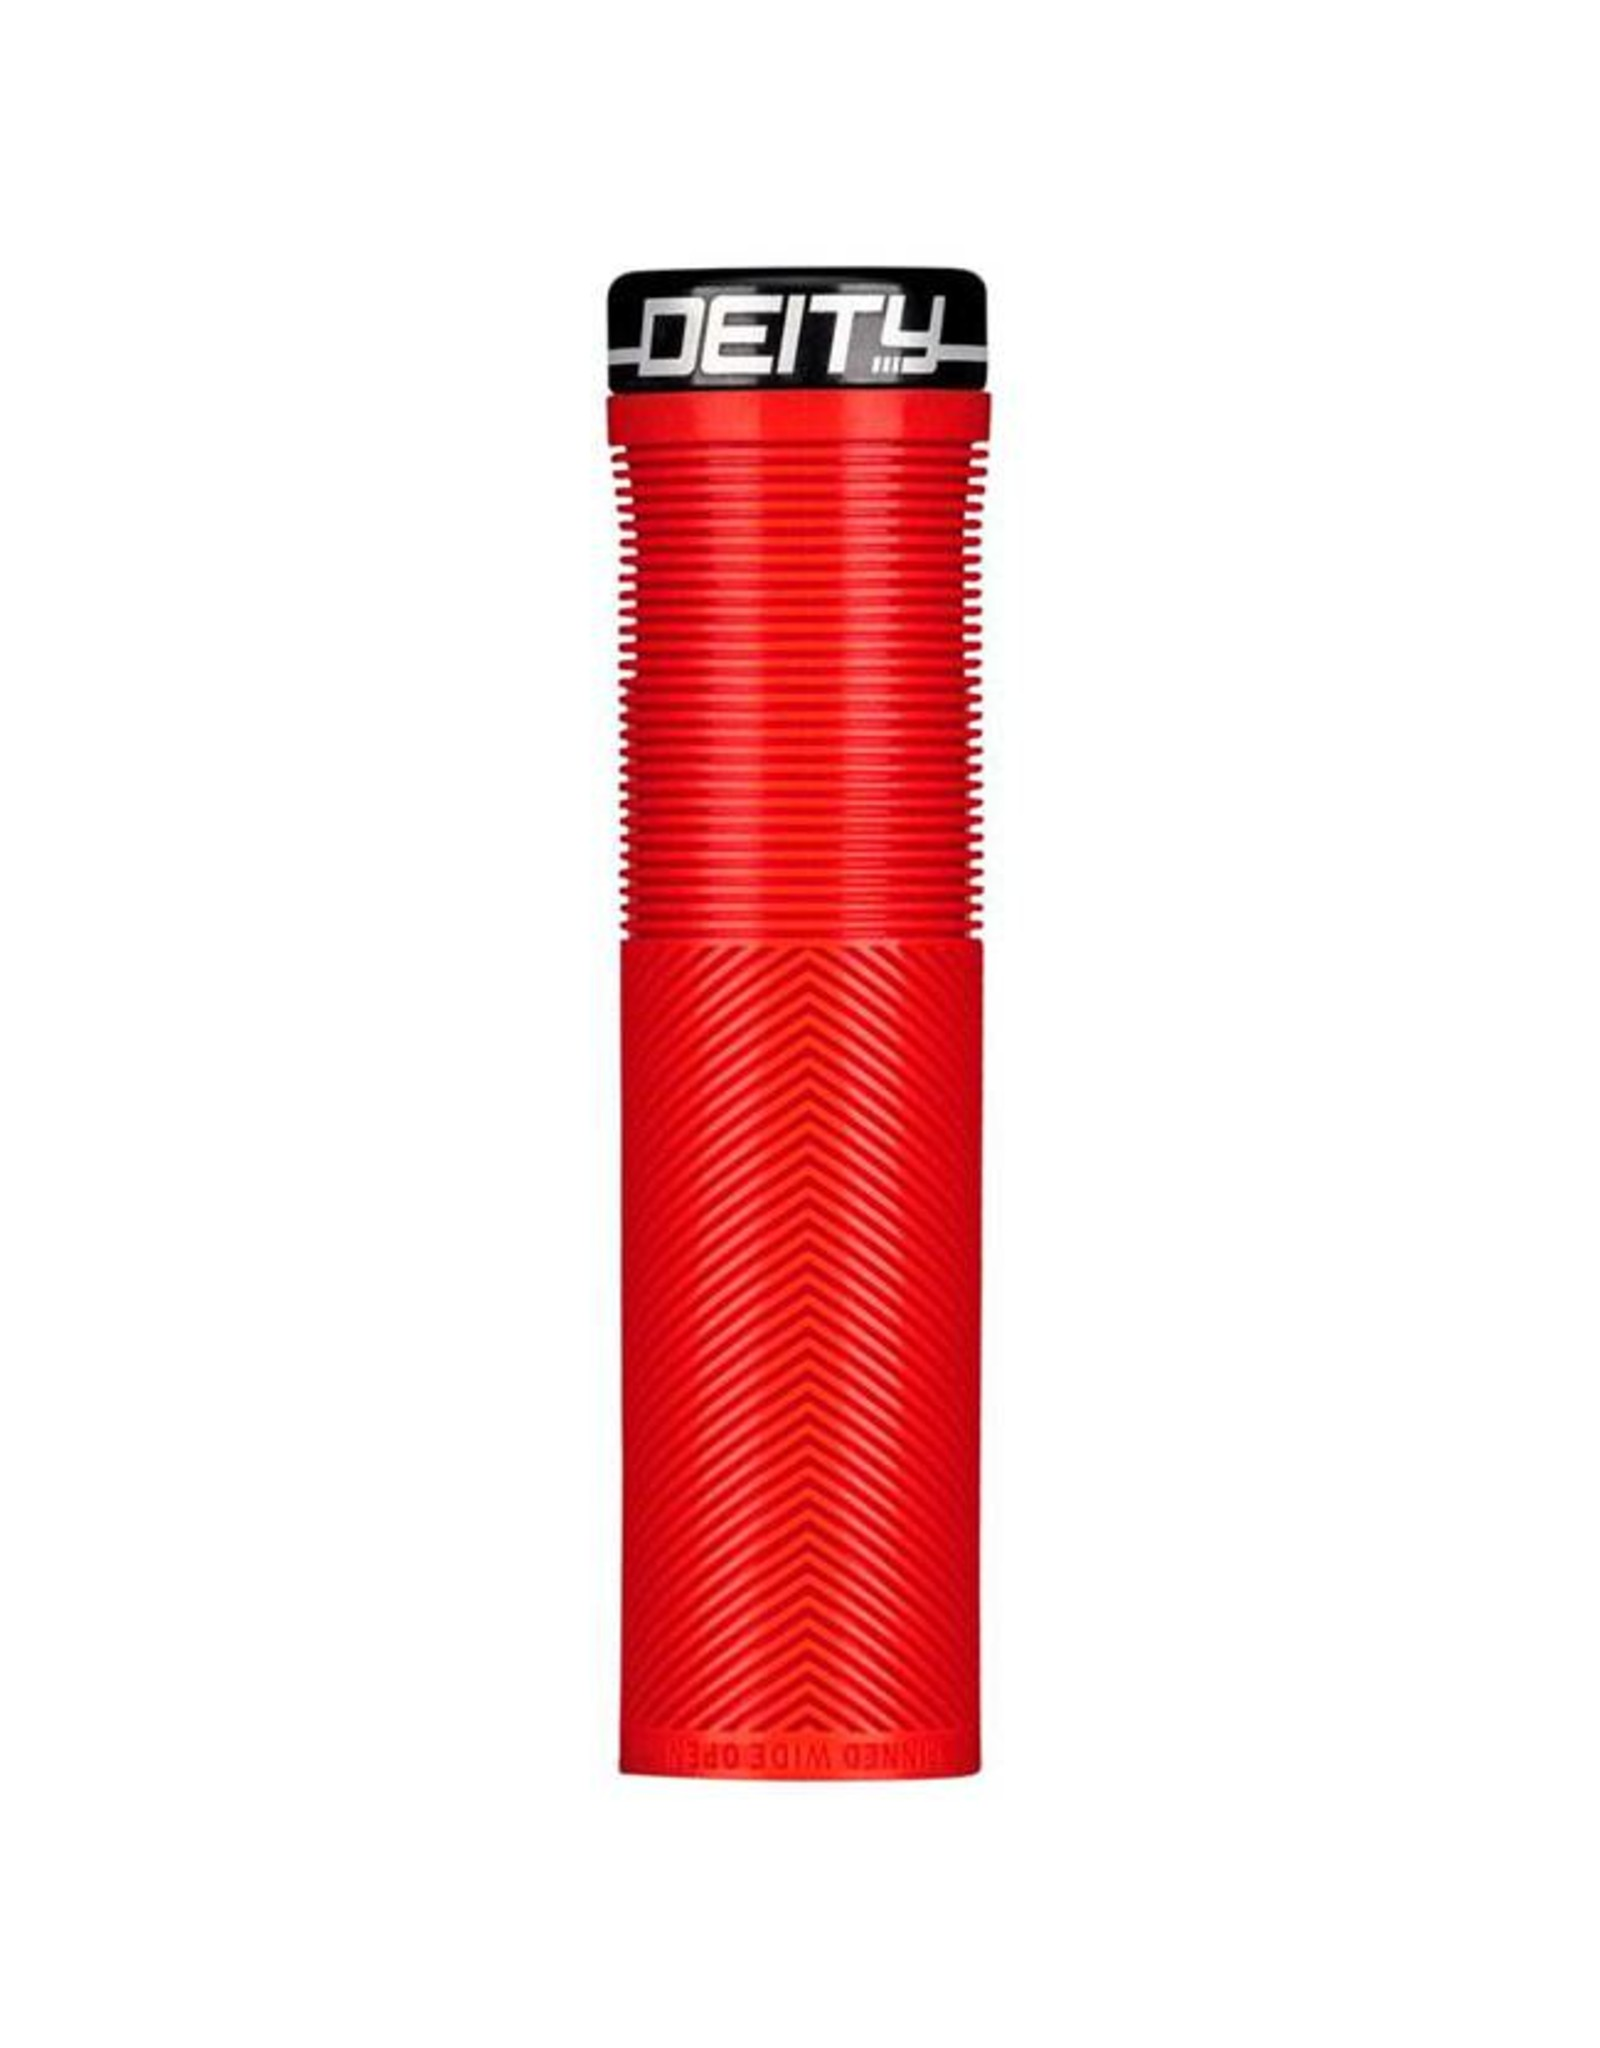 Deity Components Deity Knuckleduster Lock-on Grips: Red with Black Clamp